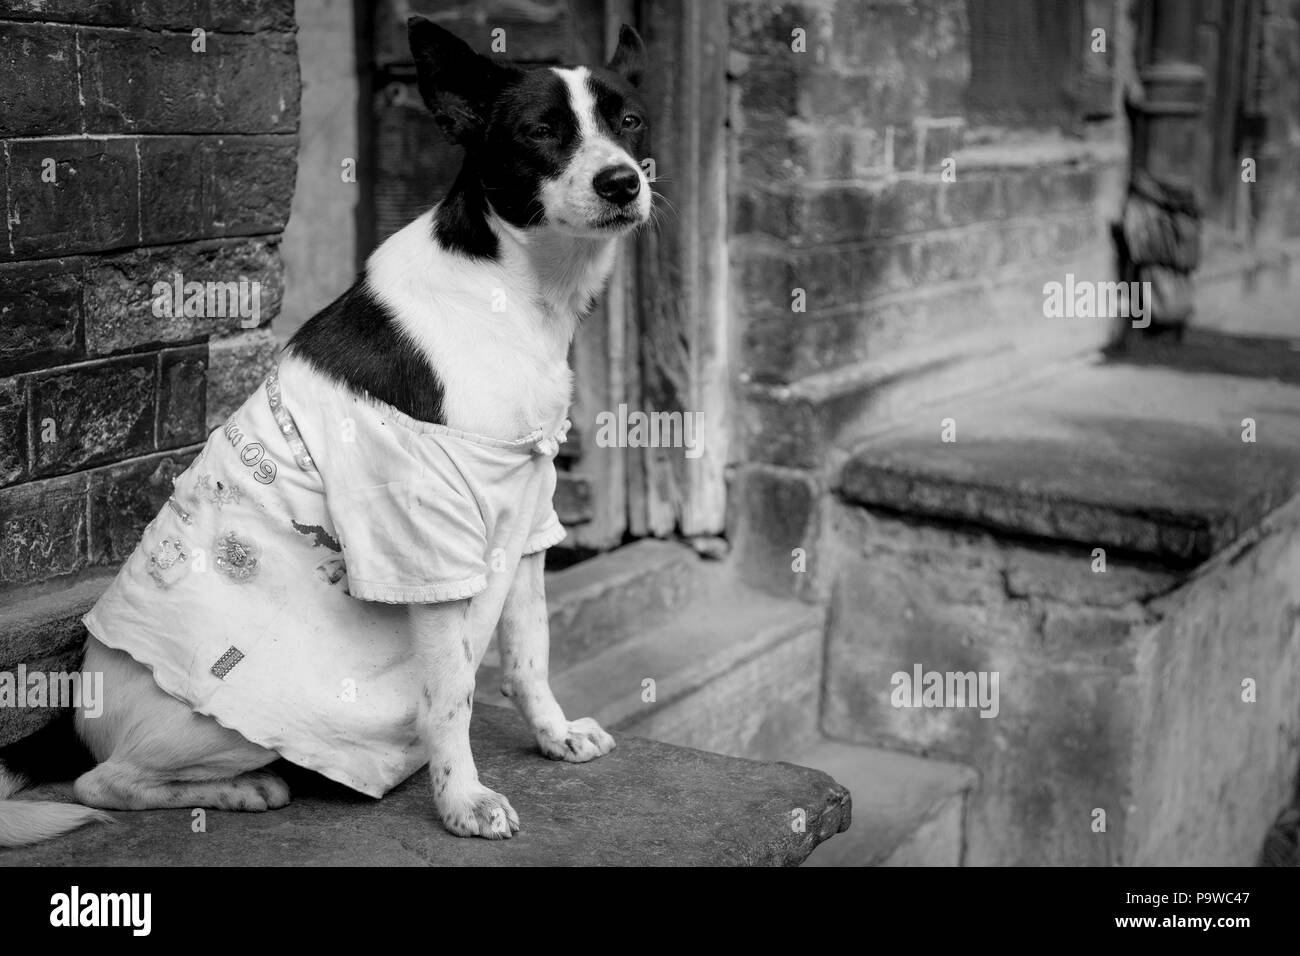 Dog with white shirt in front of a building in india monochrome - Stock Image